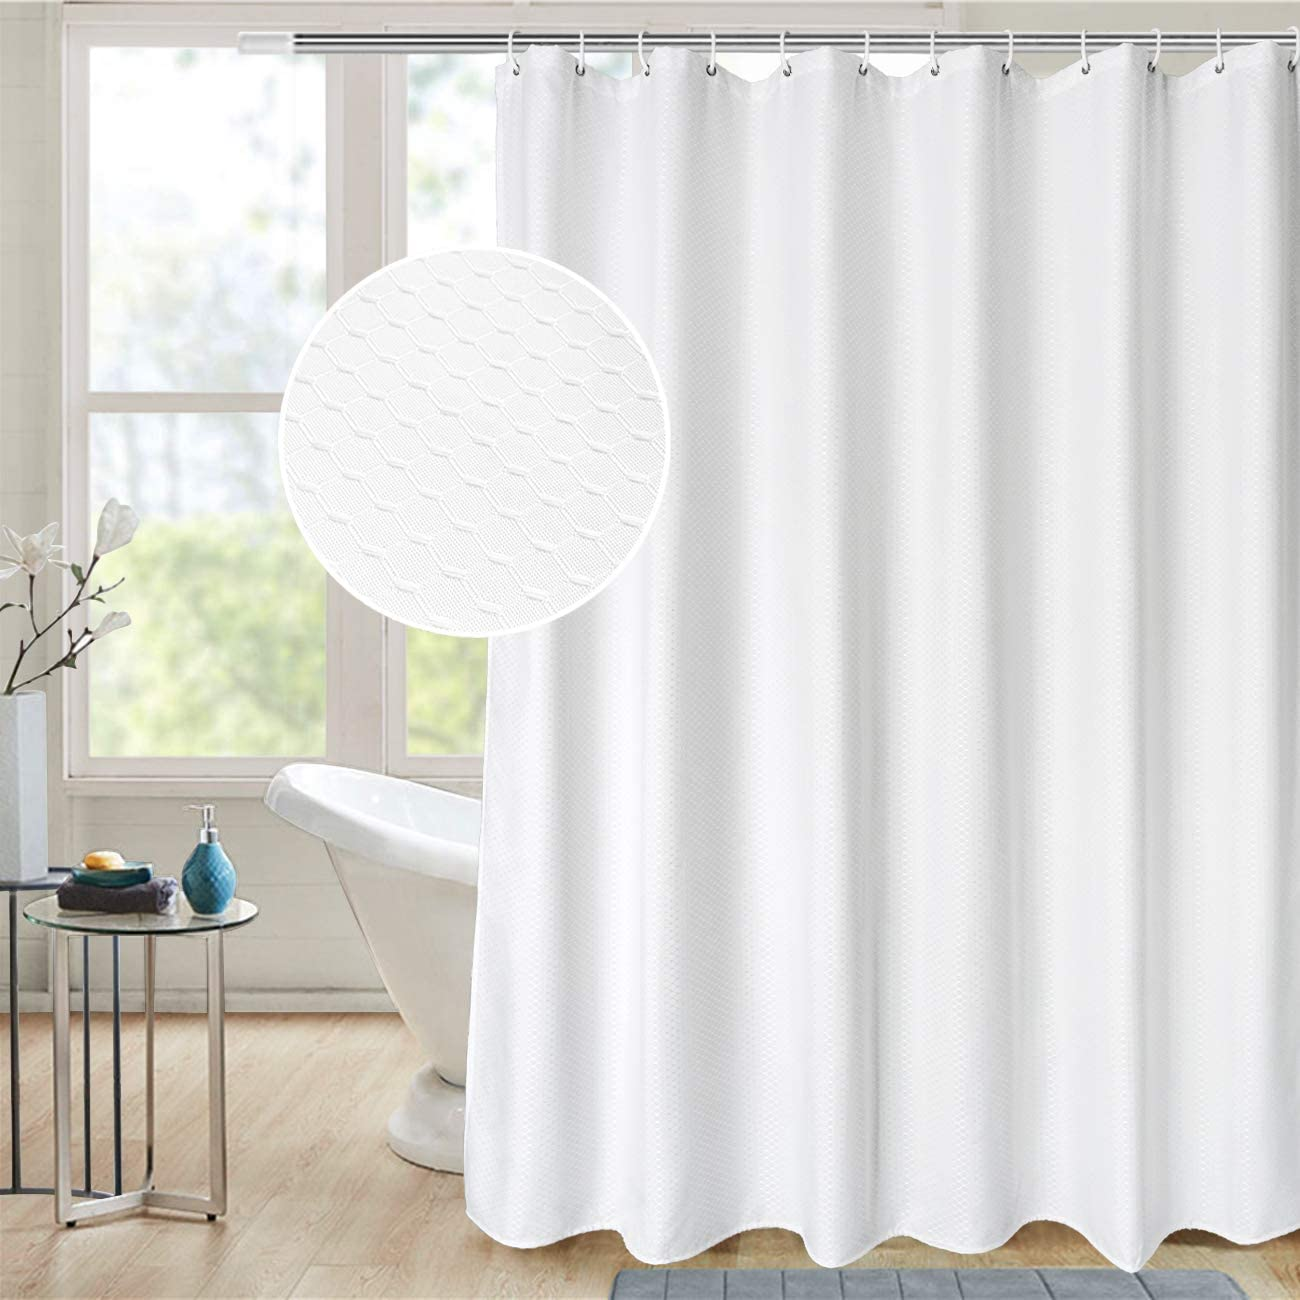 AooHome Extra Long 72x86 Inch Shower Curtain, Fabric Waffle Weave Decor Bath Curtain with Hooks, Weighted Hem, Heavy Weight, Water Repellent, White, 72 Width by 86 Height Inch